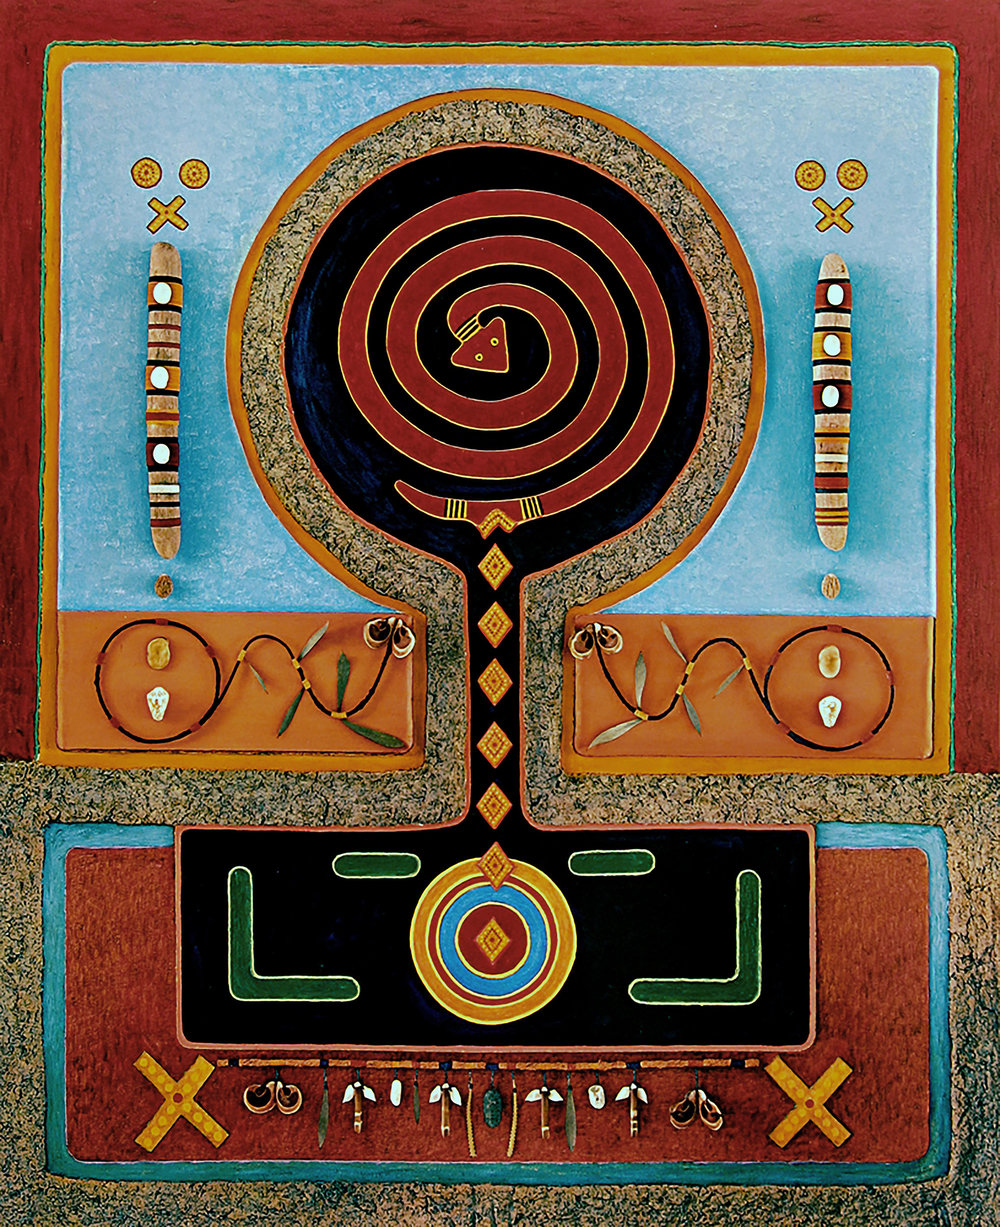 The  Rainbow Serpent 1985-1988, 24x29x2 inches, ed. 7/7